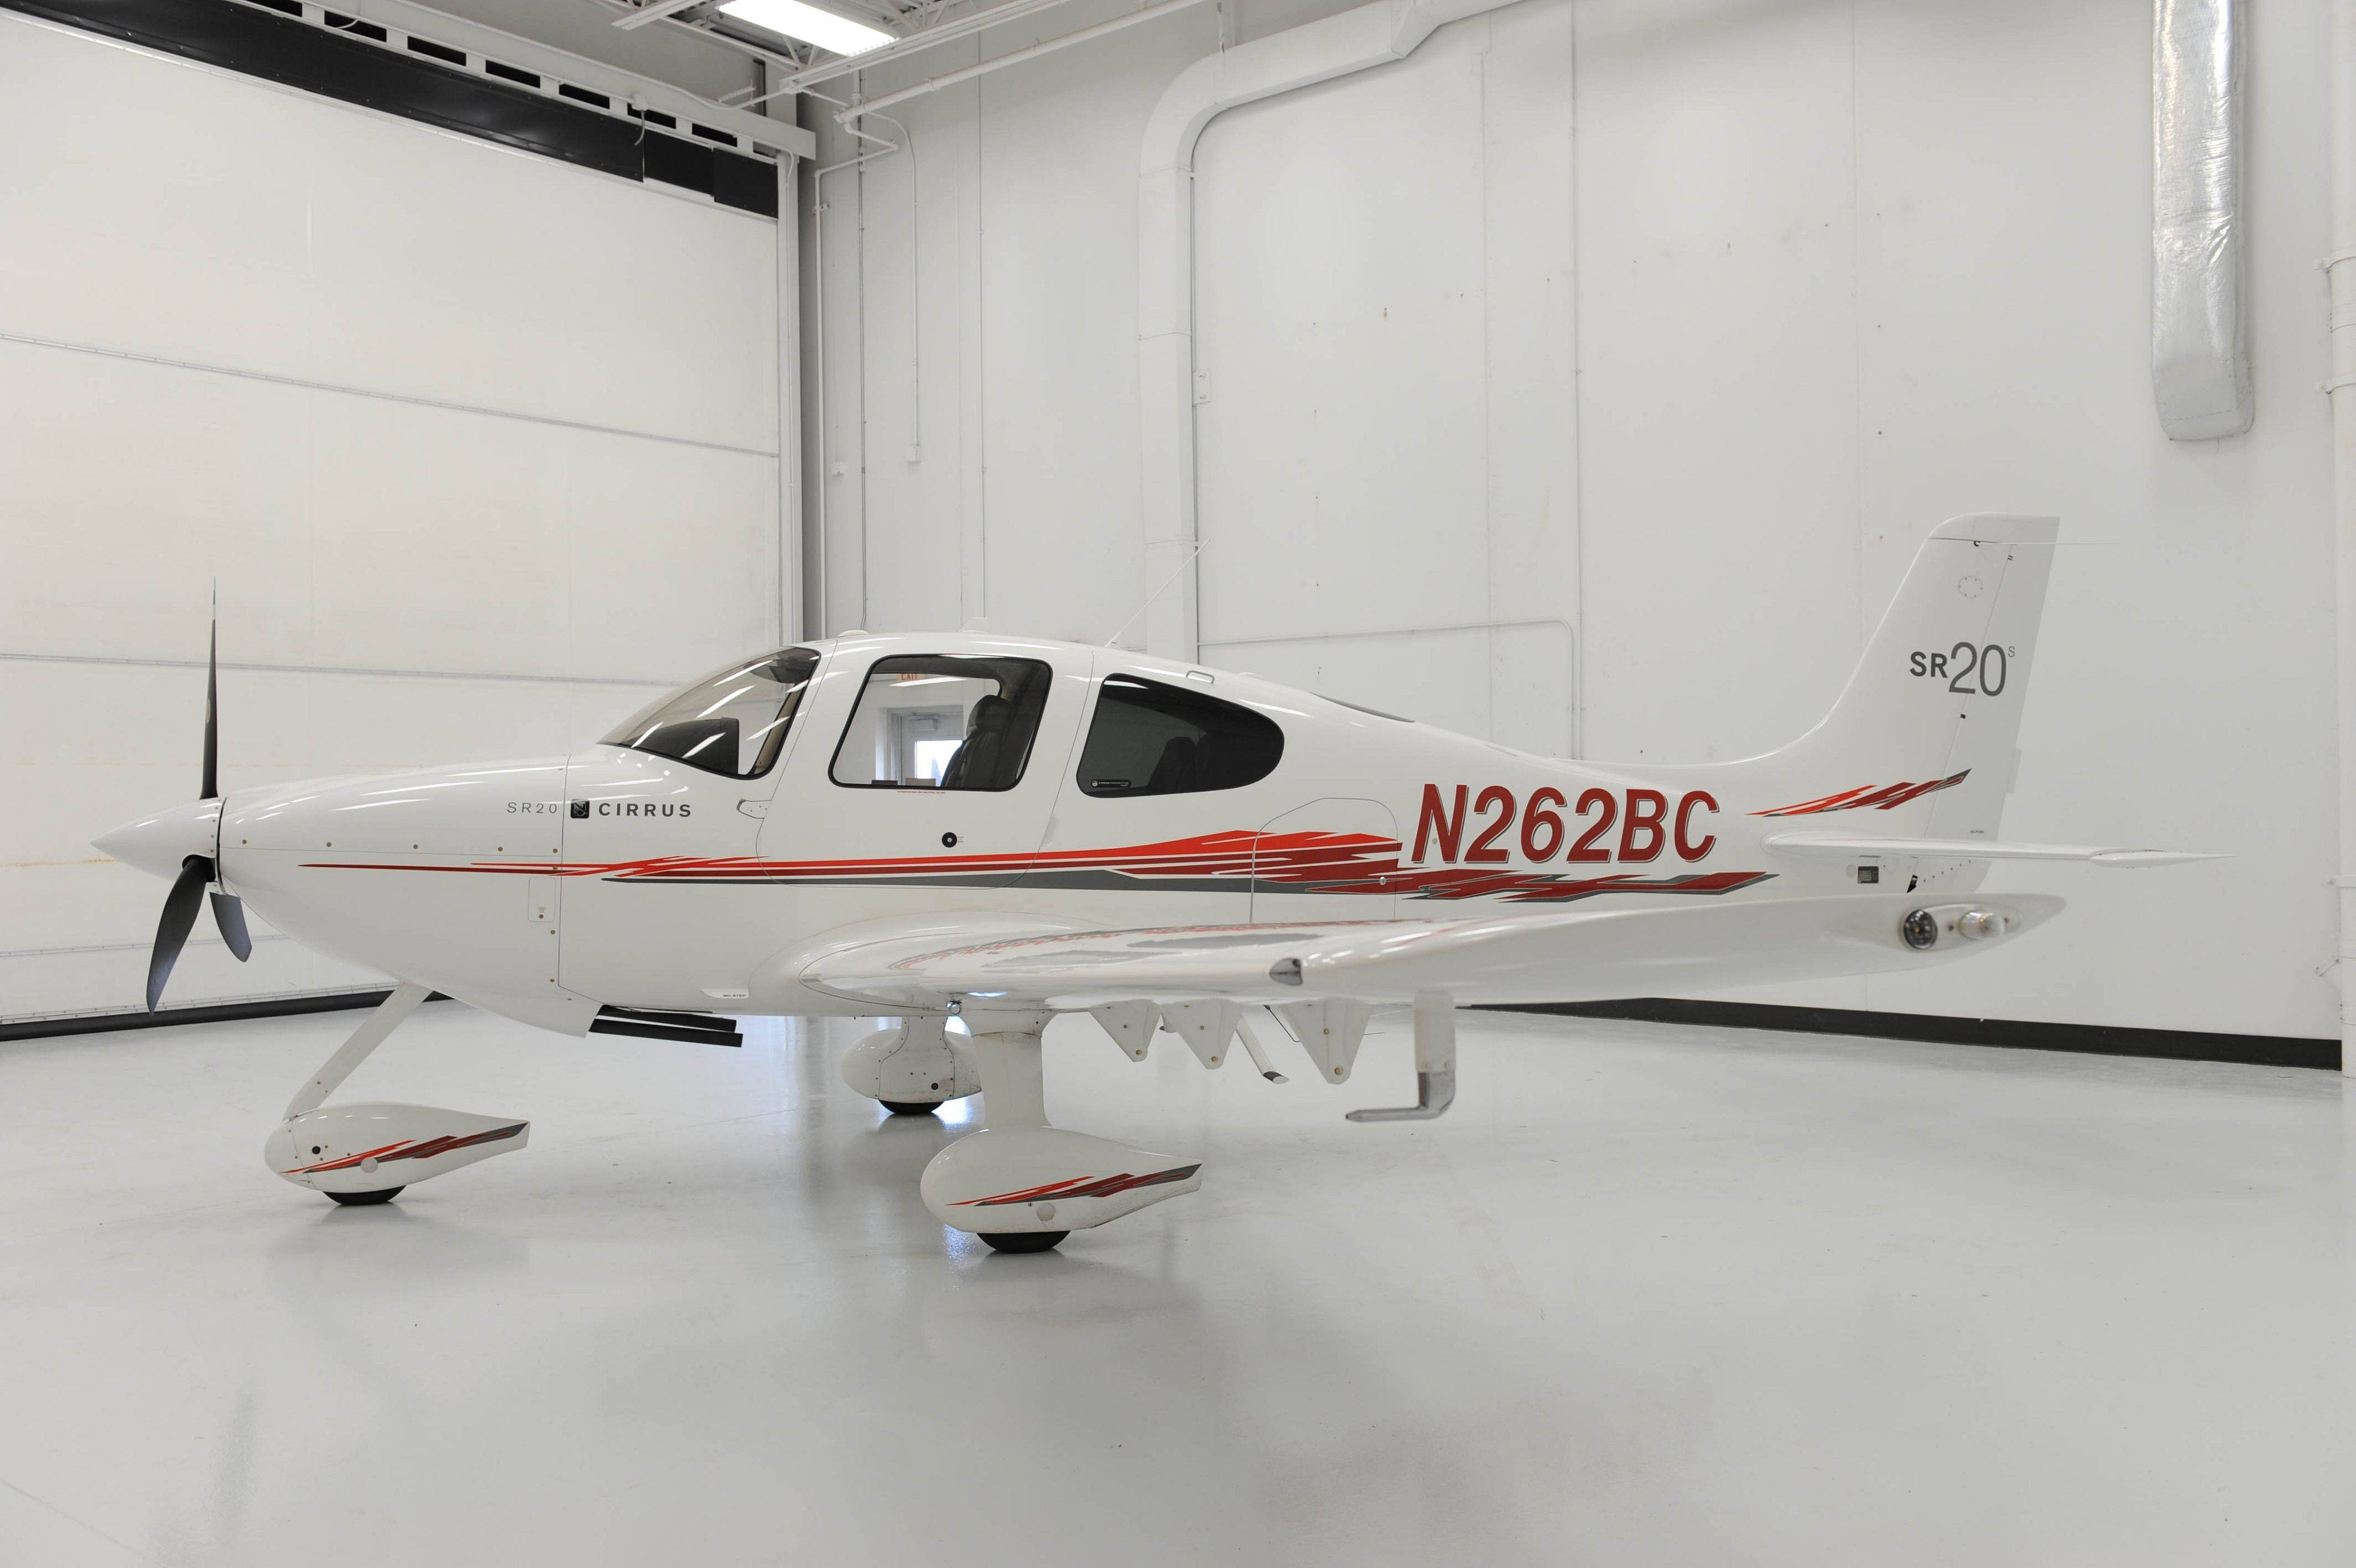 Authorities said a Cirrus SR20 like this one crashed in Crystal Lake Saturday morning, killing four people.